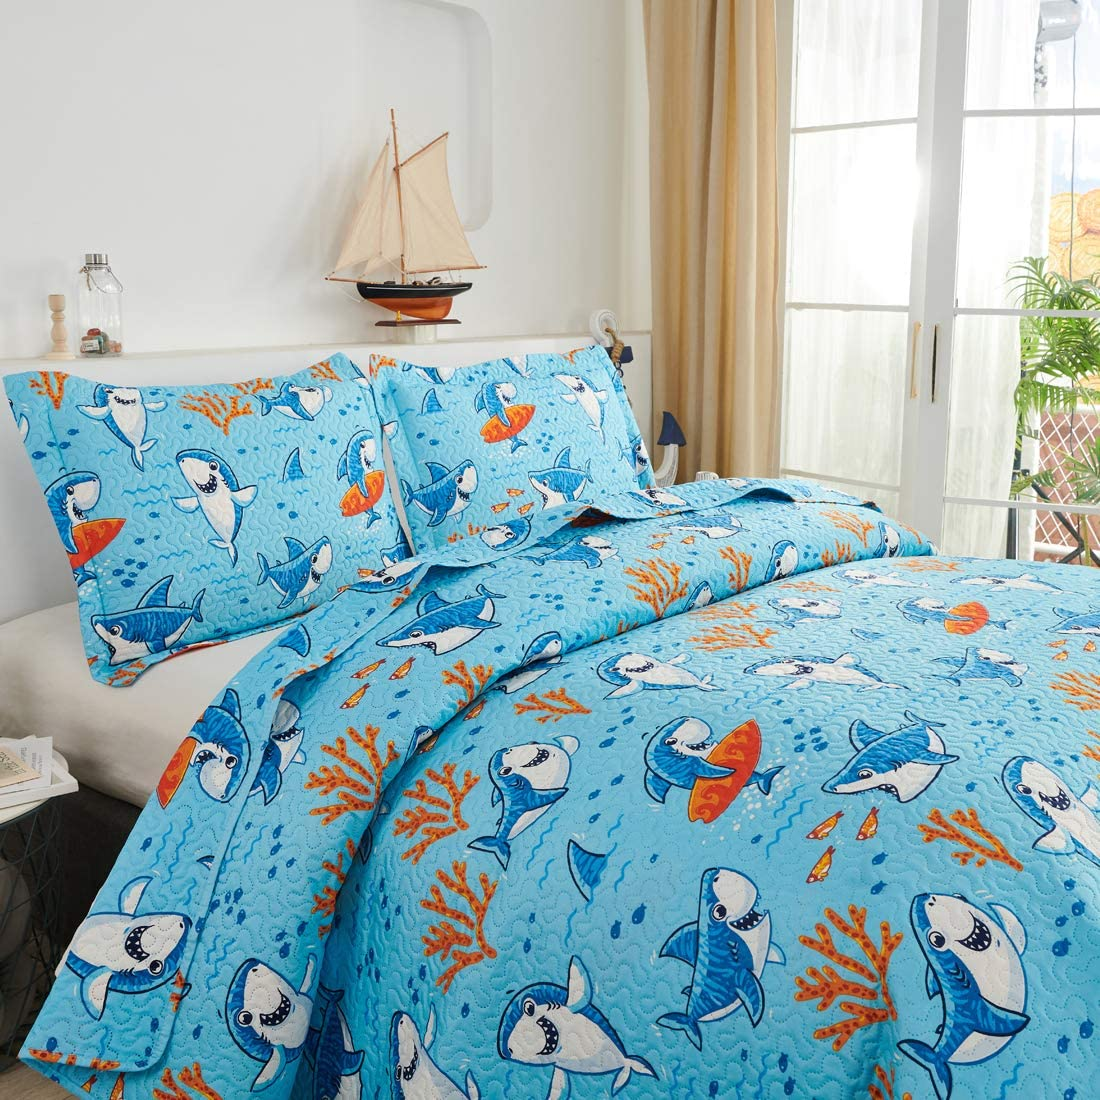 Oliven Boys Shark Quilts Bedspread Twin Size Lightweight Thin Daybed Cover Breathable Dark Blue Funny Shark Crab Seaweed Kids Coverlet Bed Cover Blanket with 2 Standard Pillow Shams